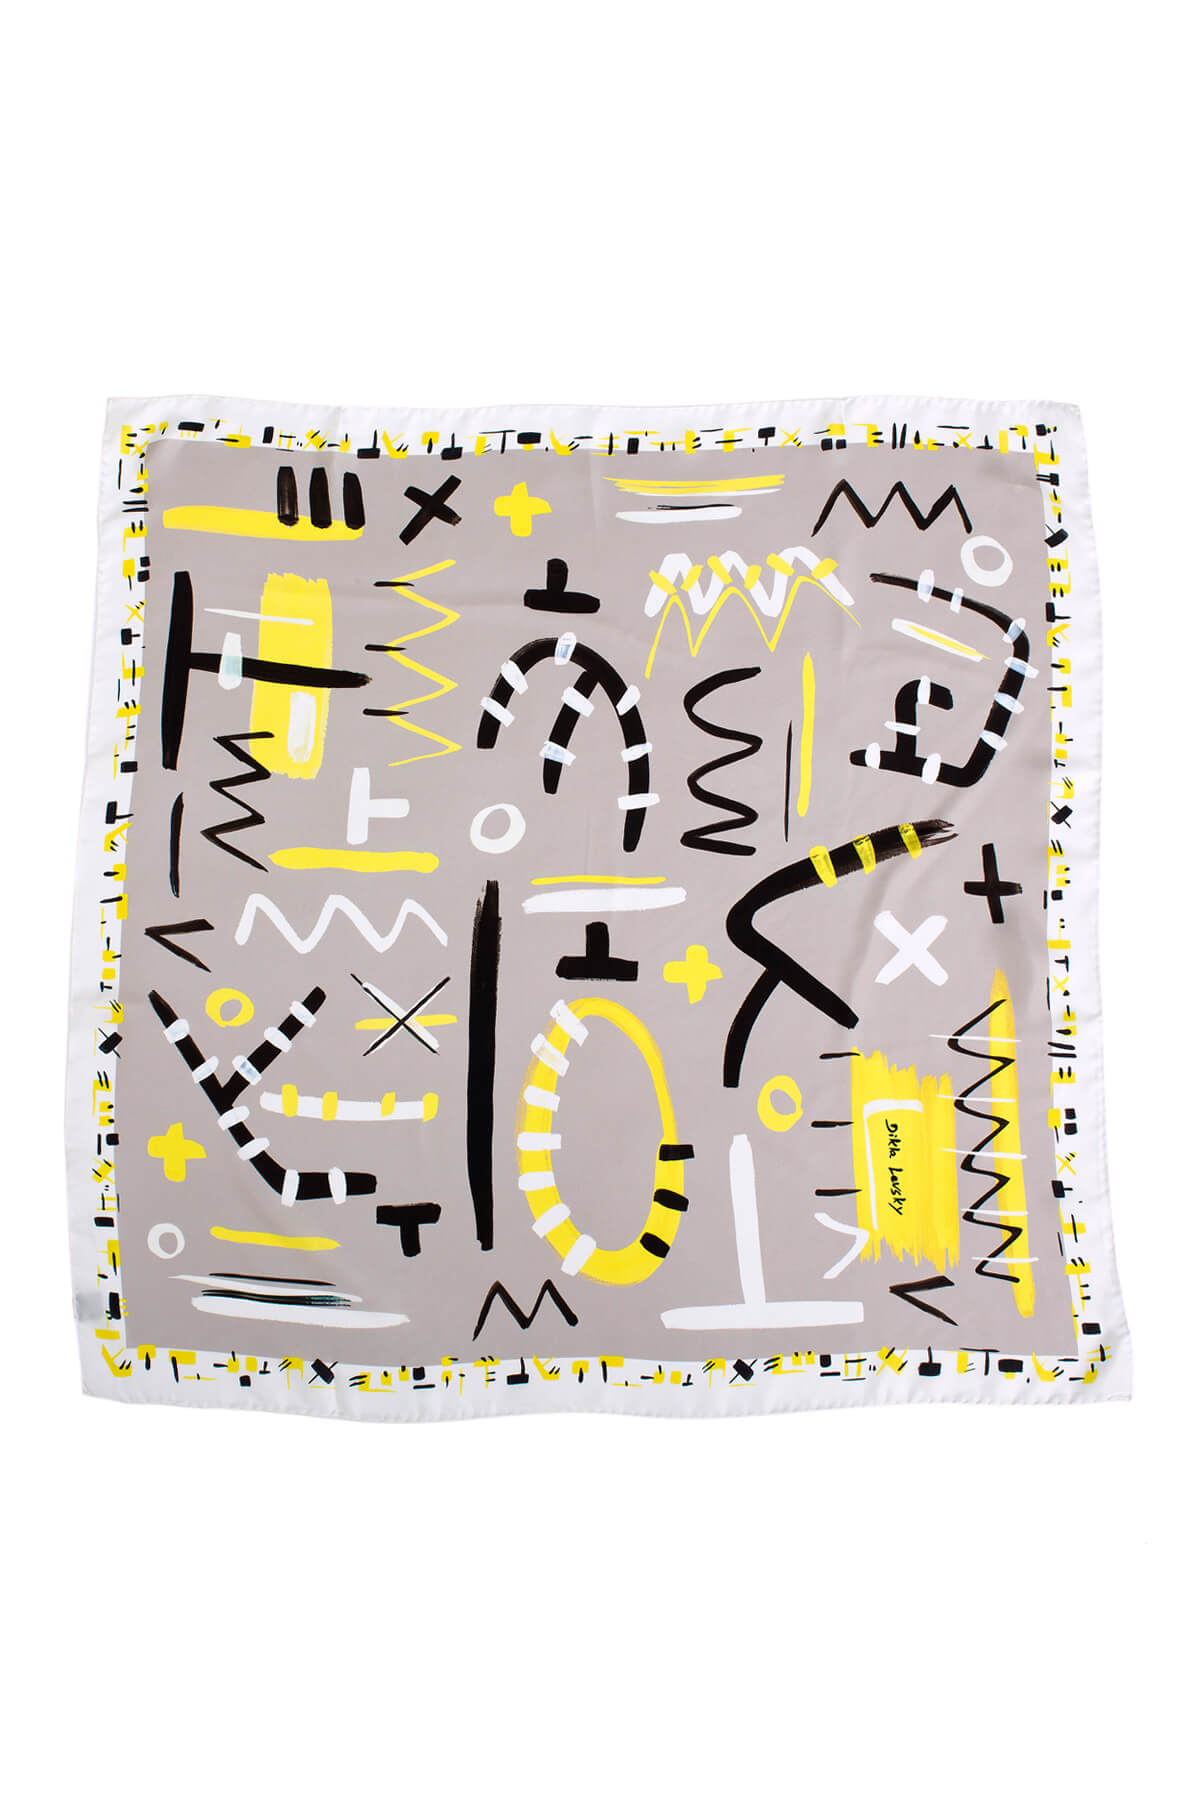 designer scarf in modern grey and yellow print, silk scarf by dikla levsky